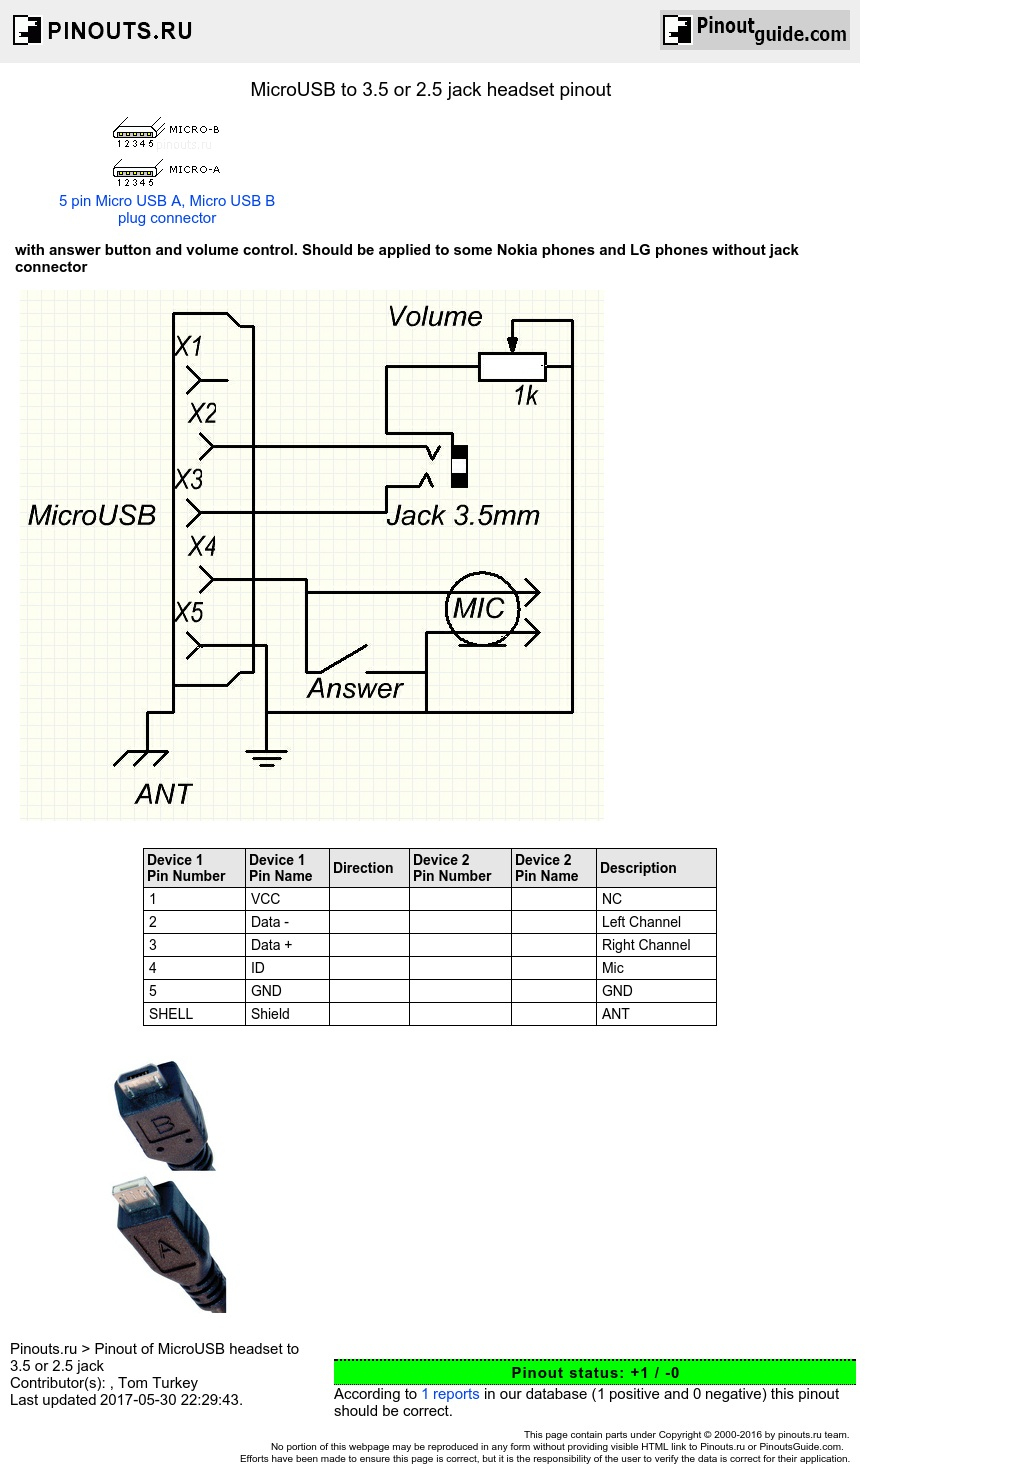 Microusb To 3.5 Or 2.5 Jack Headset Pinout Diagram @ Pinoutguide - 5 Wire Usb Wiring Diagram